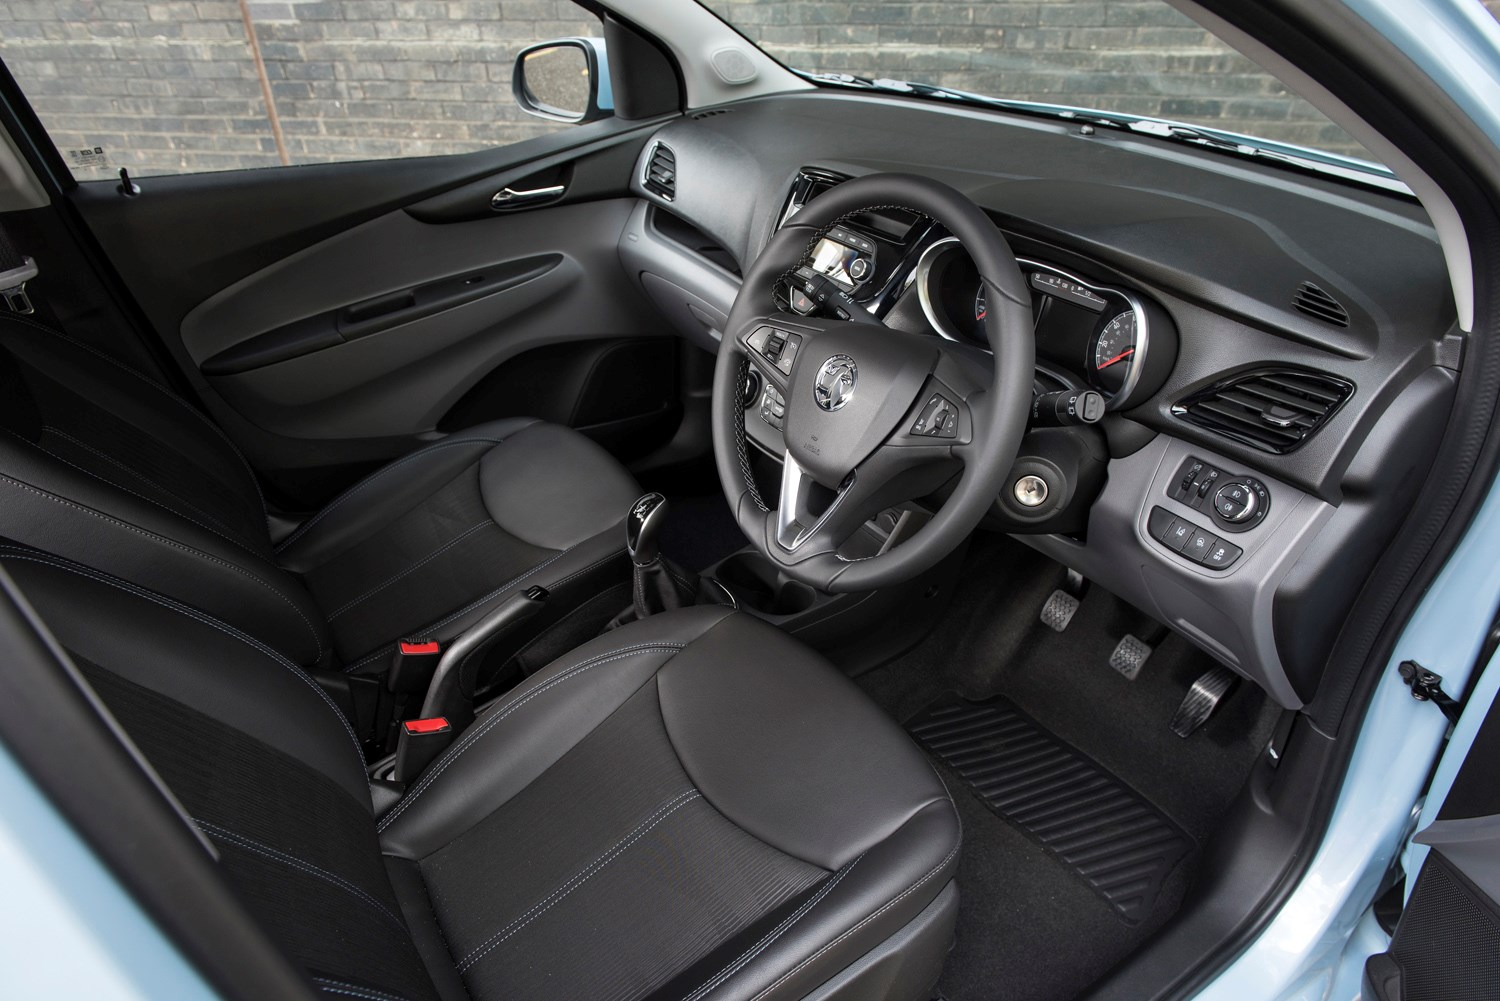 awesome-design-of-the-black-dash-ideas-with-black-seats-ideas-with-black-steering-wheels-as-the-vauxhall-viva-2015-interior